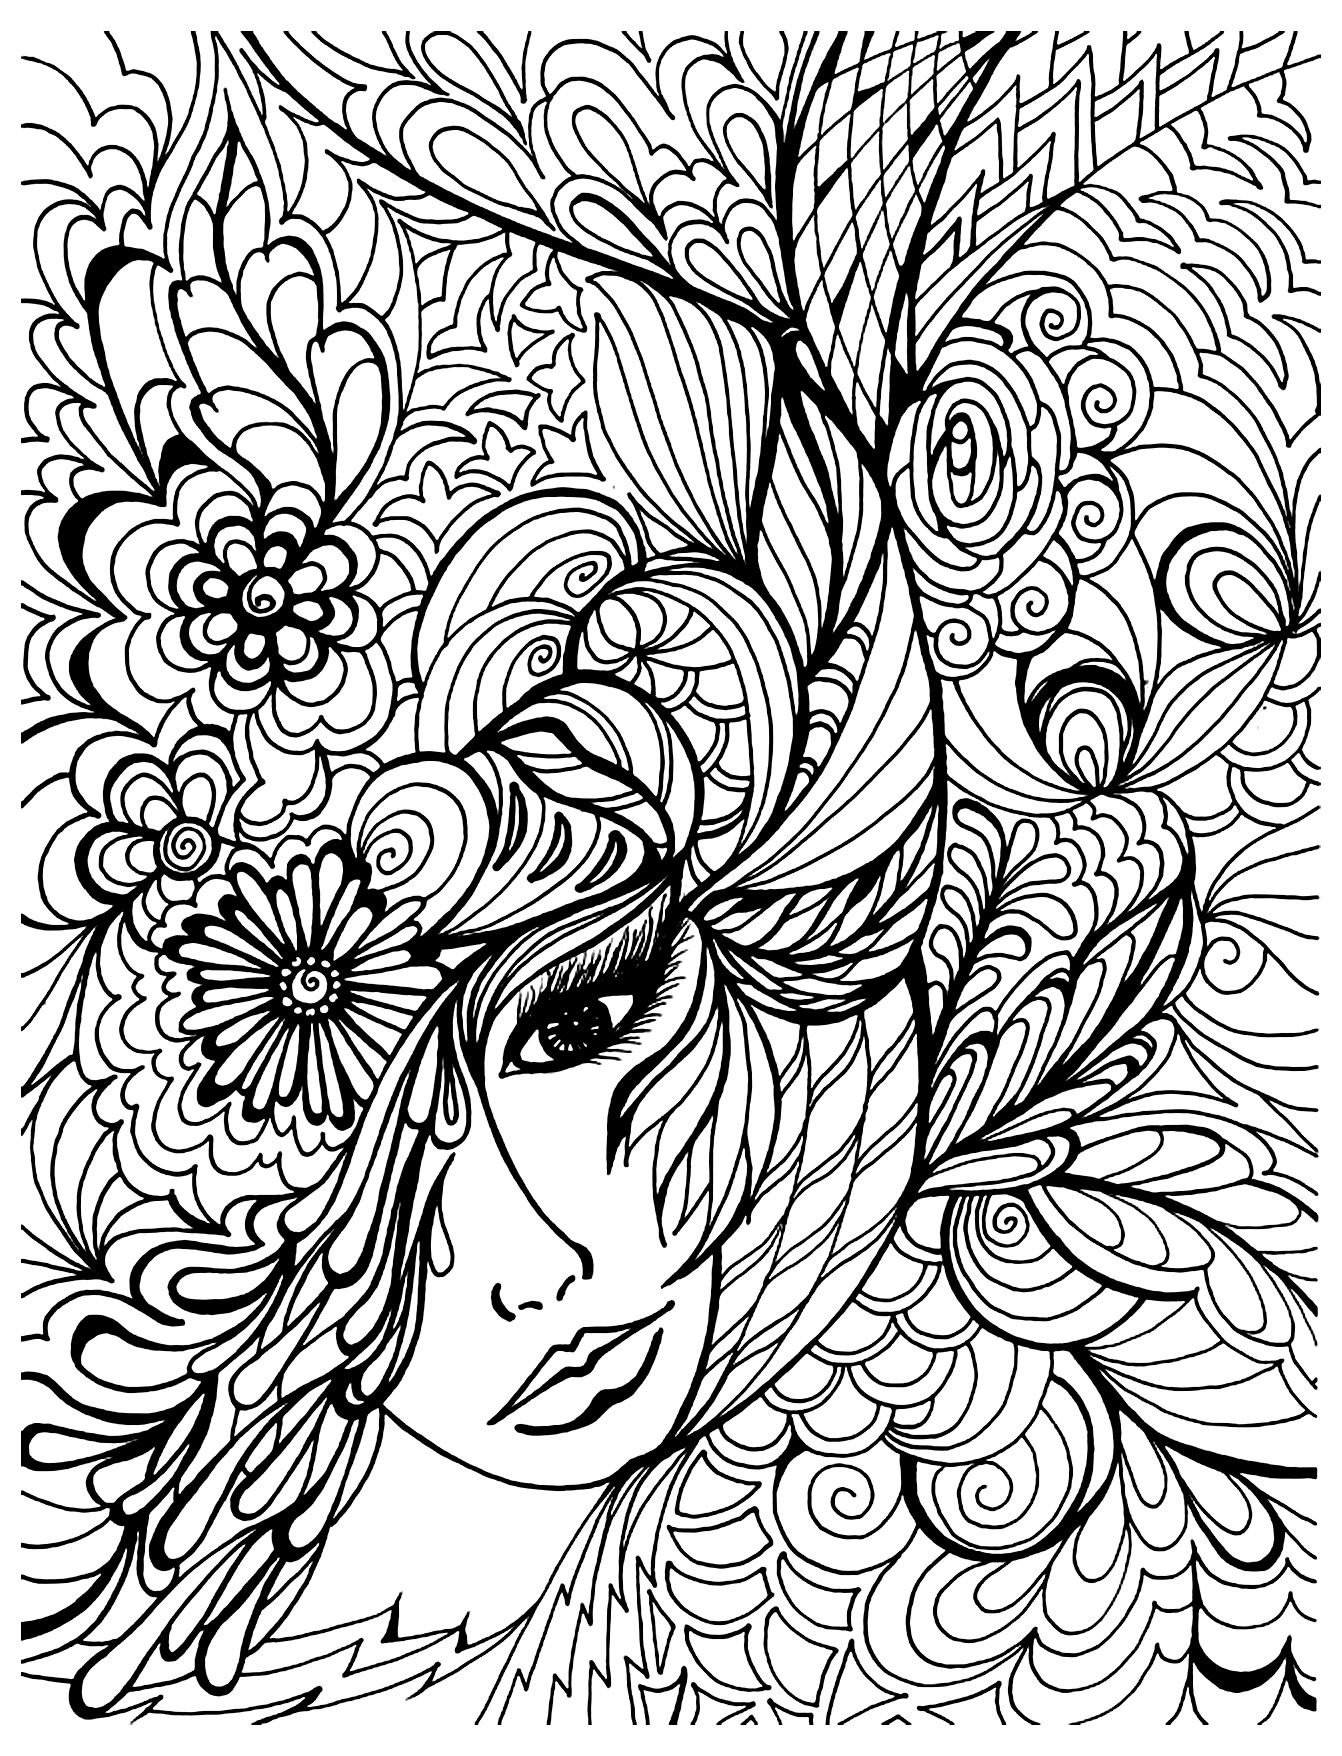 free printable coloring pages for adults zen : To Print This Free Coloring Page Coloring Face Vegetation Click On